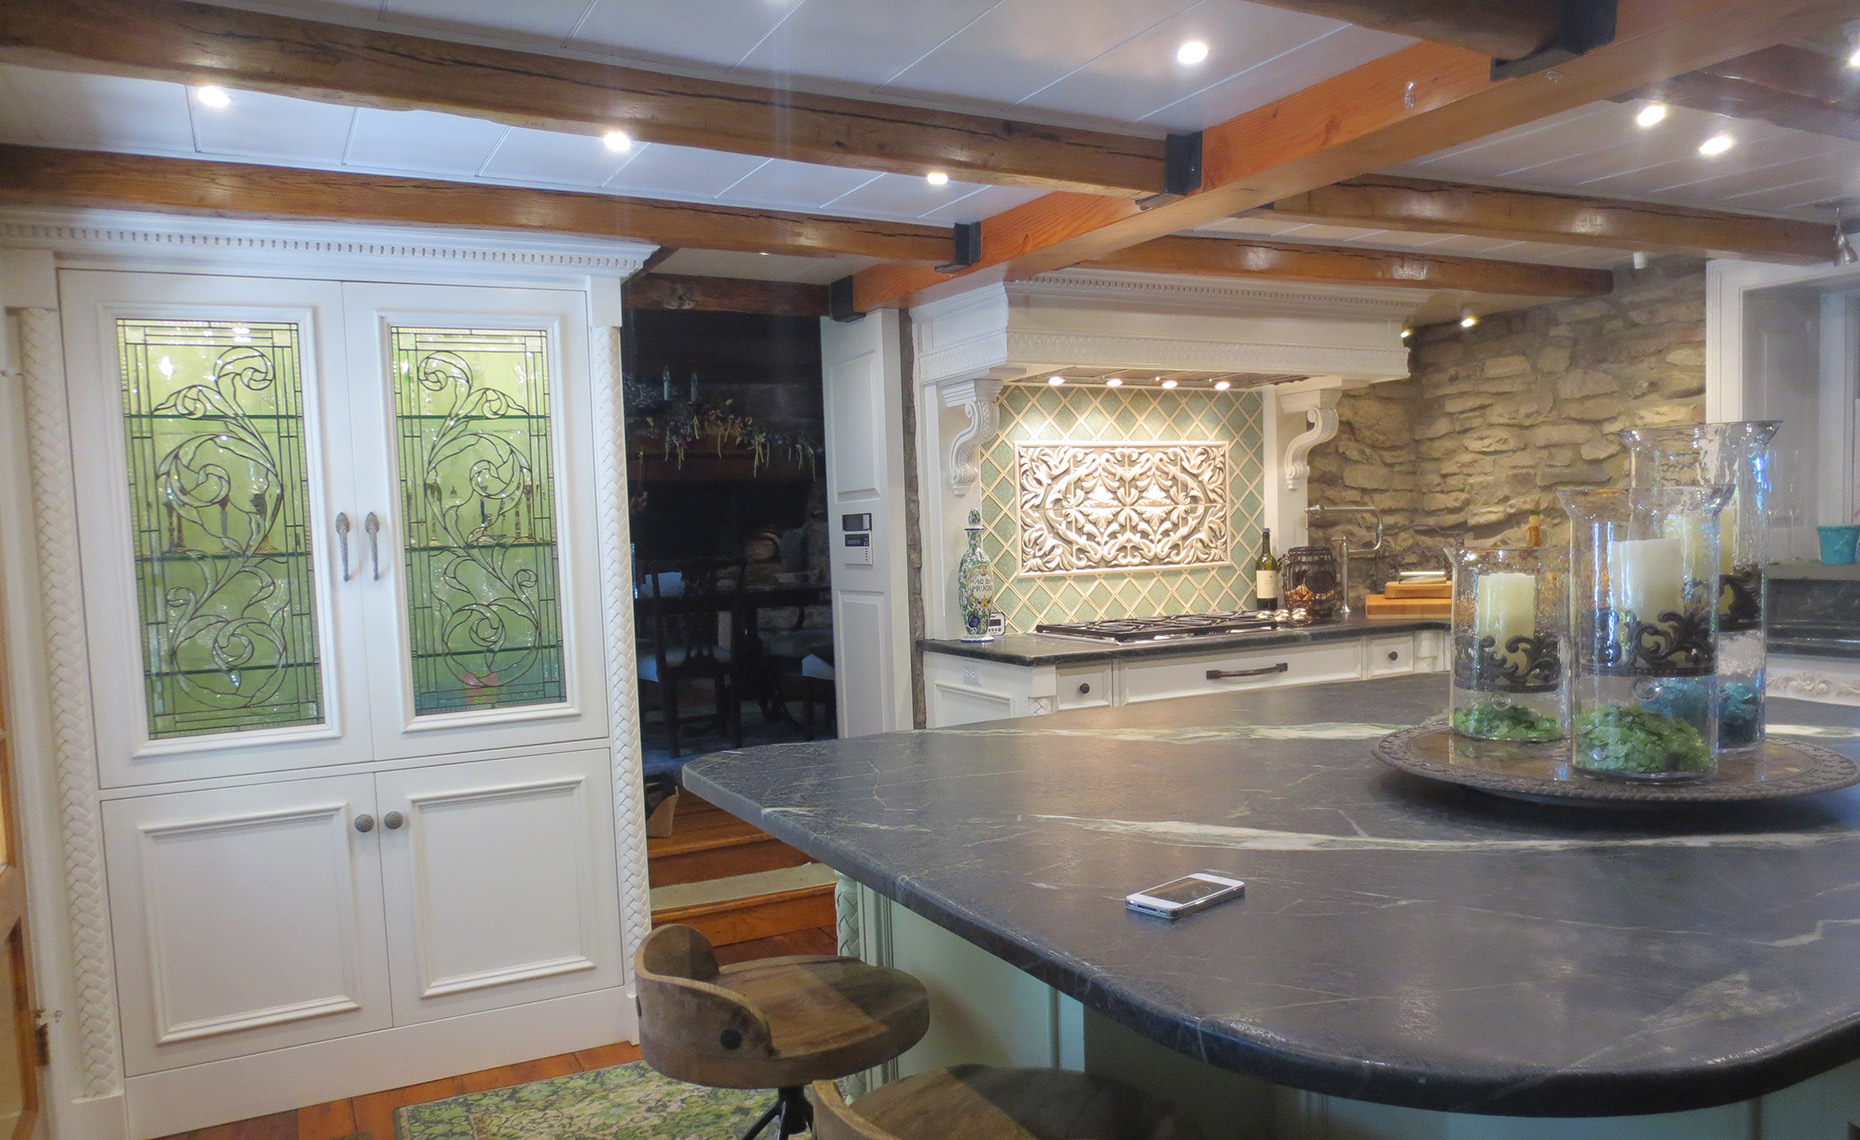 custom kitchen remodels bucks county PA - Traditional, classic custom cabinets, painted, carvings 1